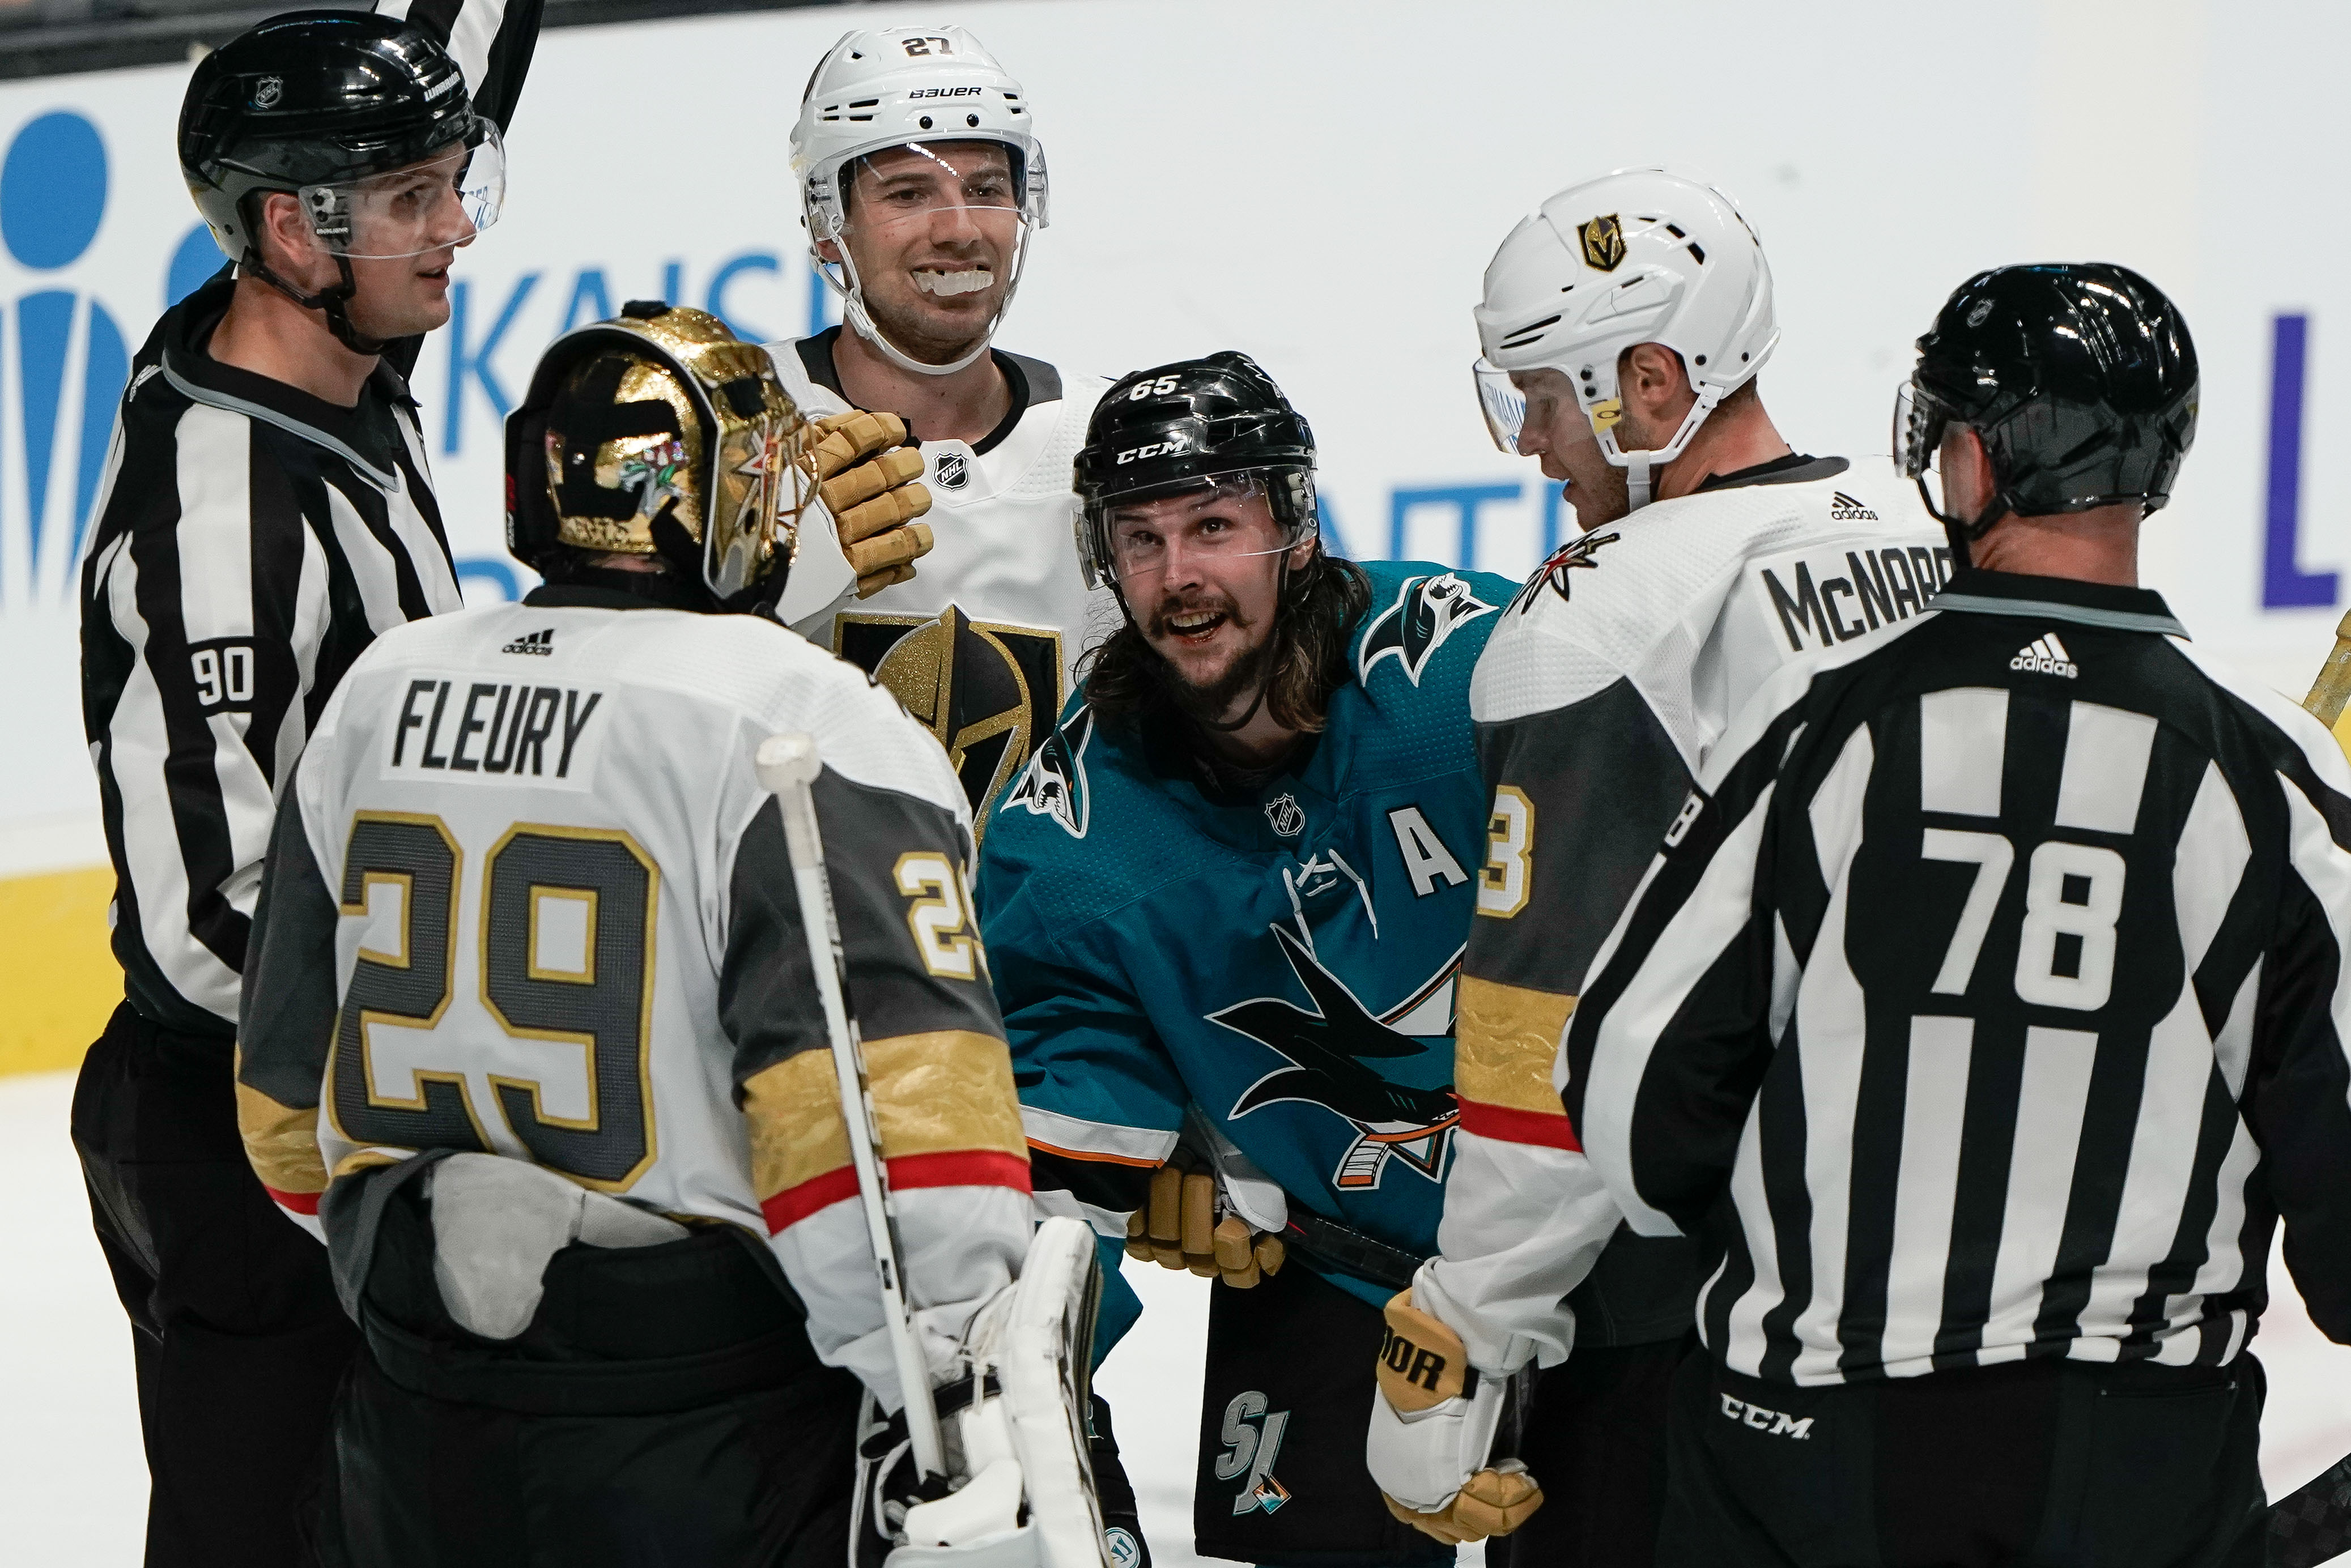 San Jose Sharks defenseman Erik Karlsson reacts after the whistle as he is surrounded by Vegas Golden Knights goaltender Marc-Andre Fleury, defenseman Shea Theodore and defenseman Brayden McNabb during the third period at SAP Center at San Jose.